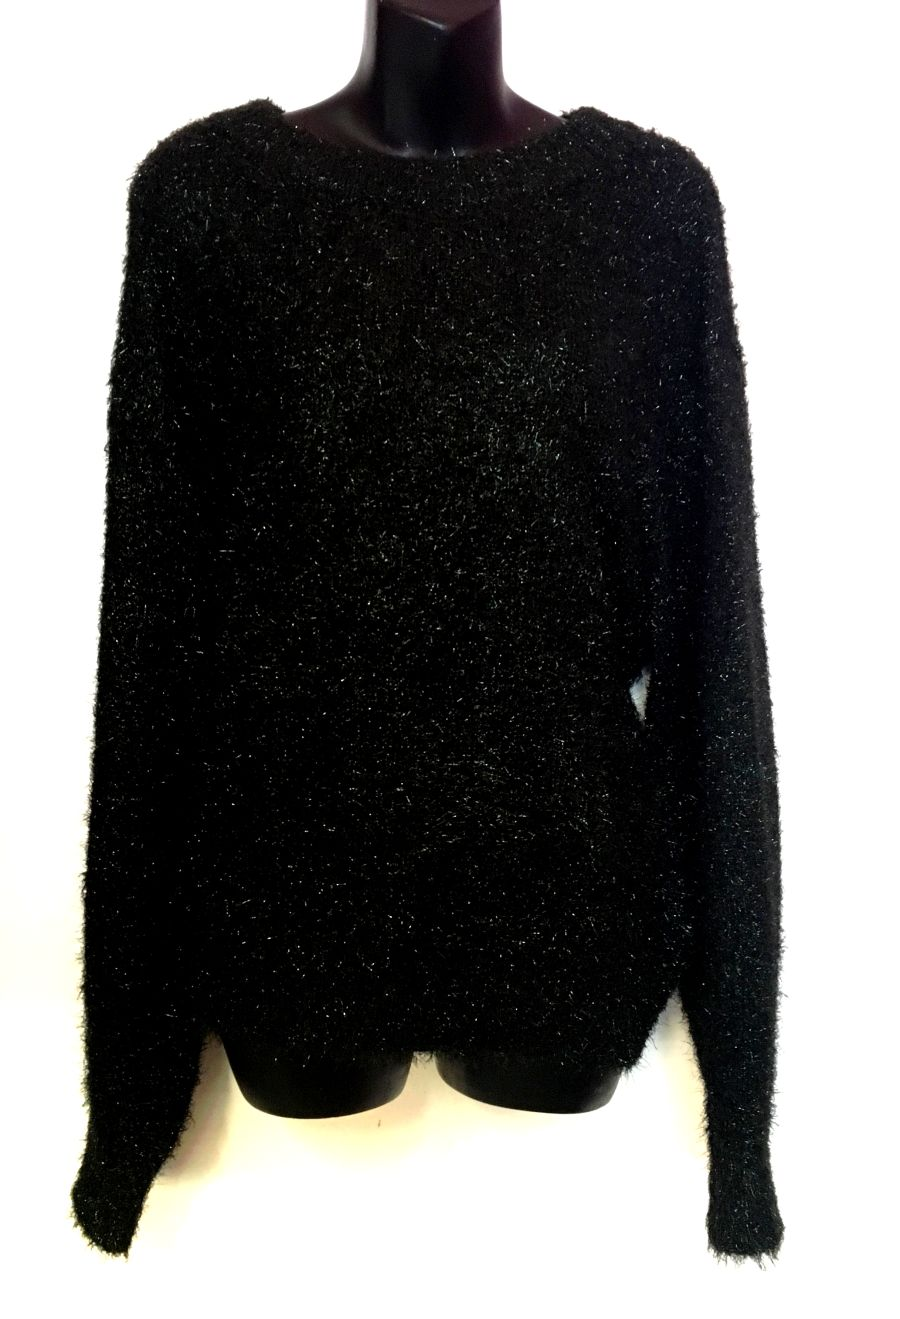 90's Black Knitted Sparkle Jumper